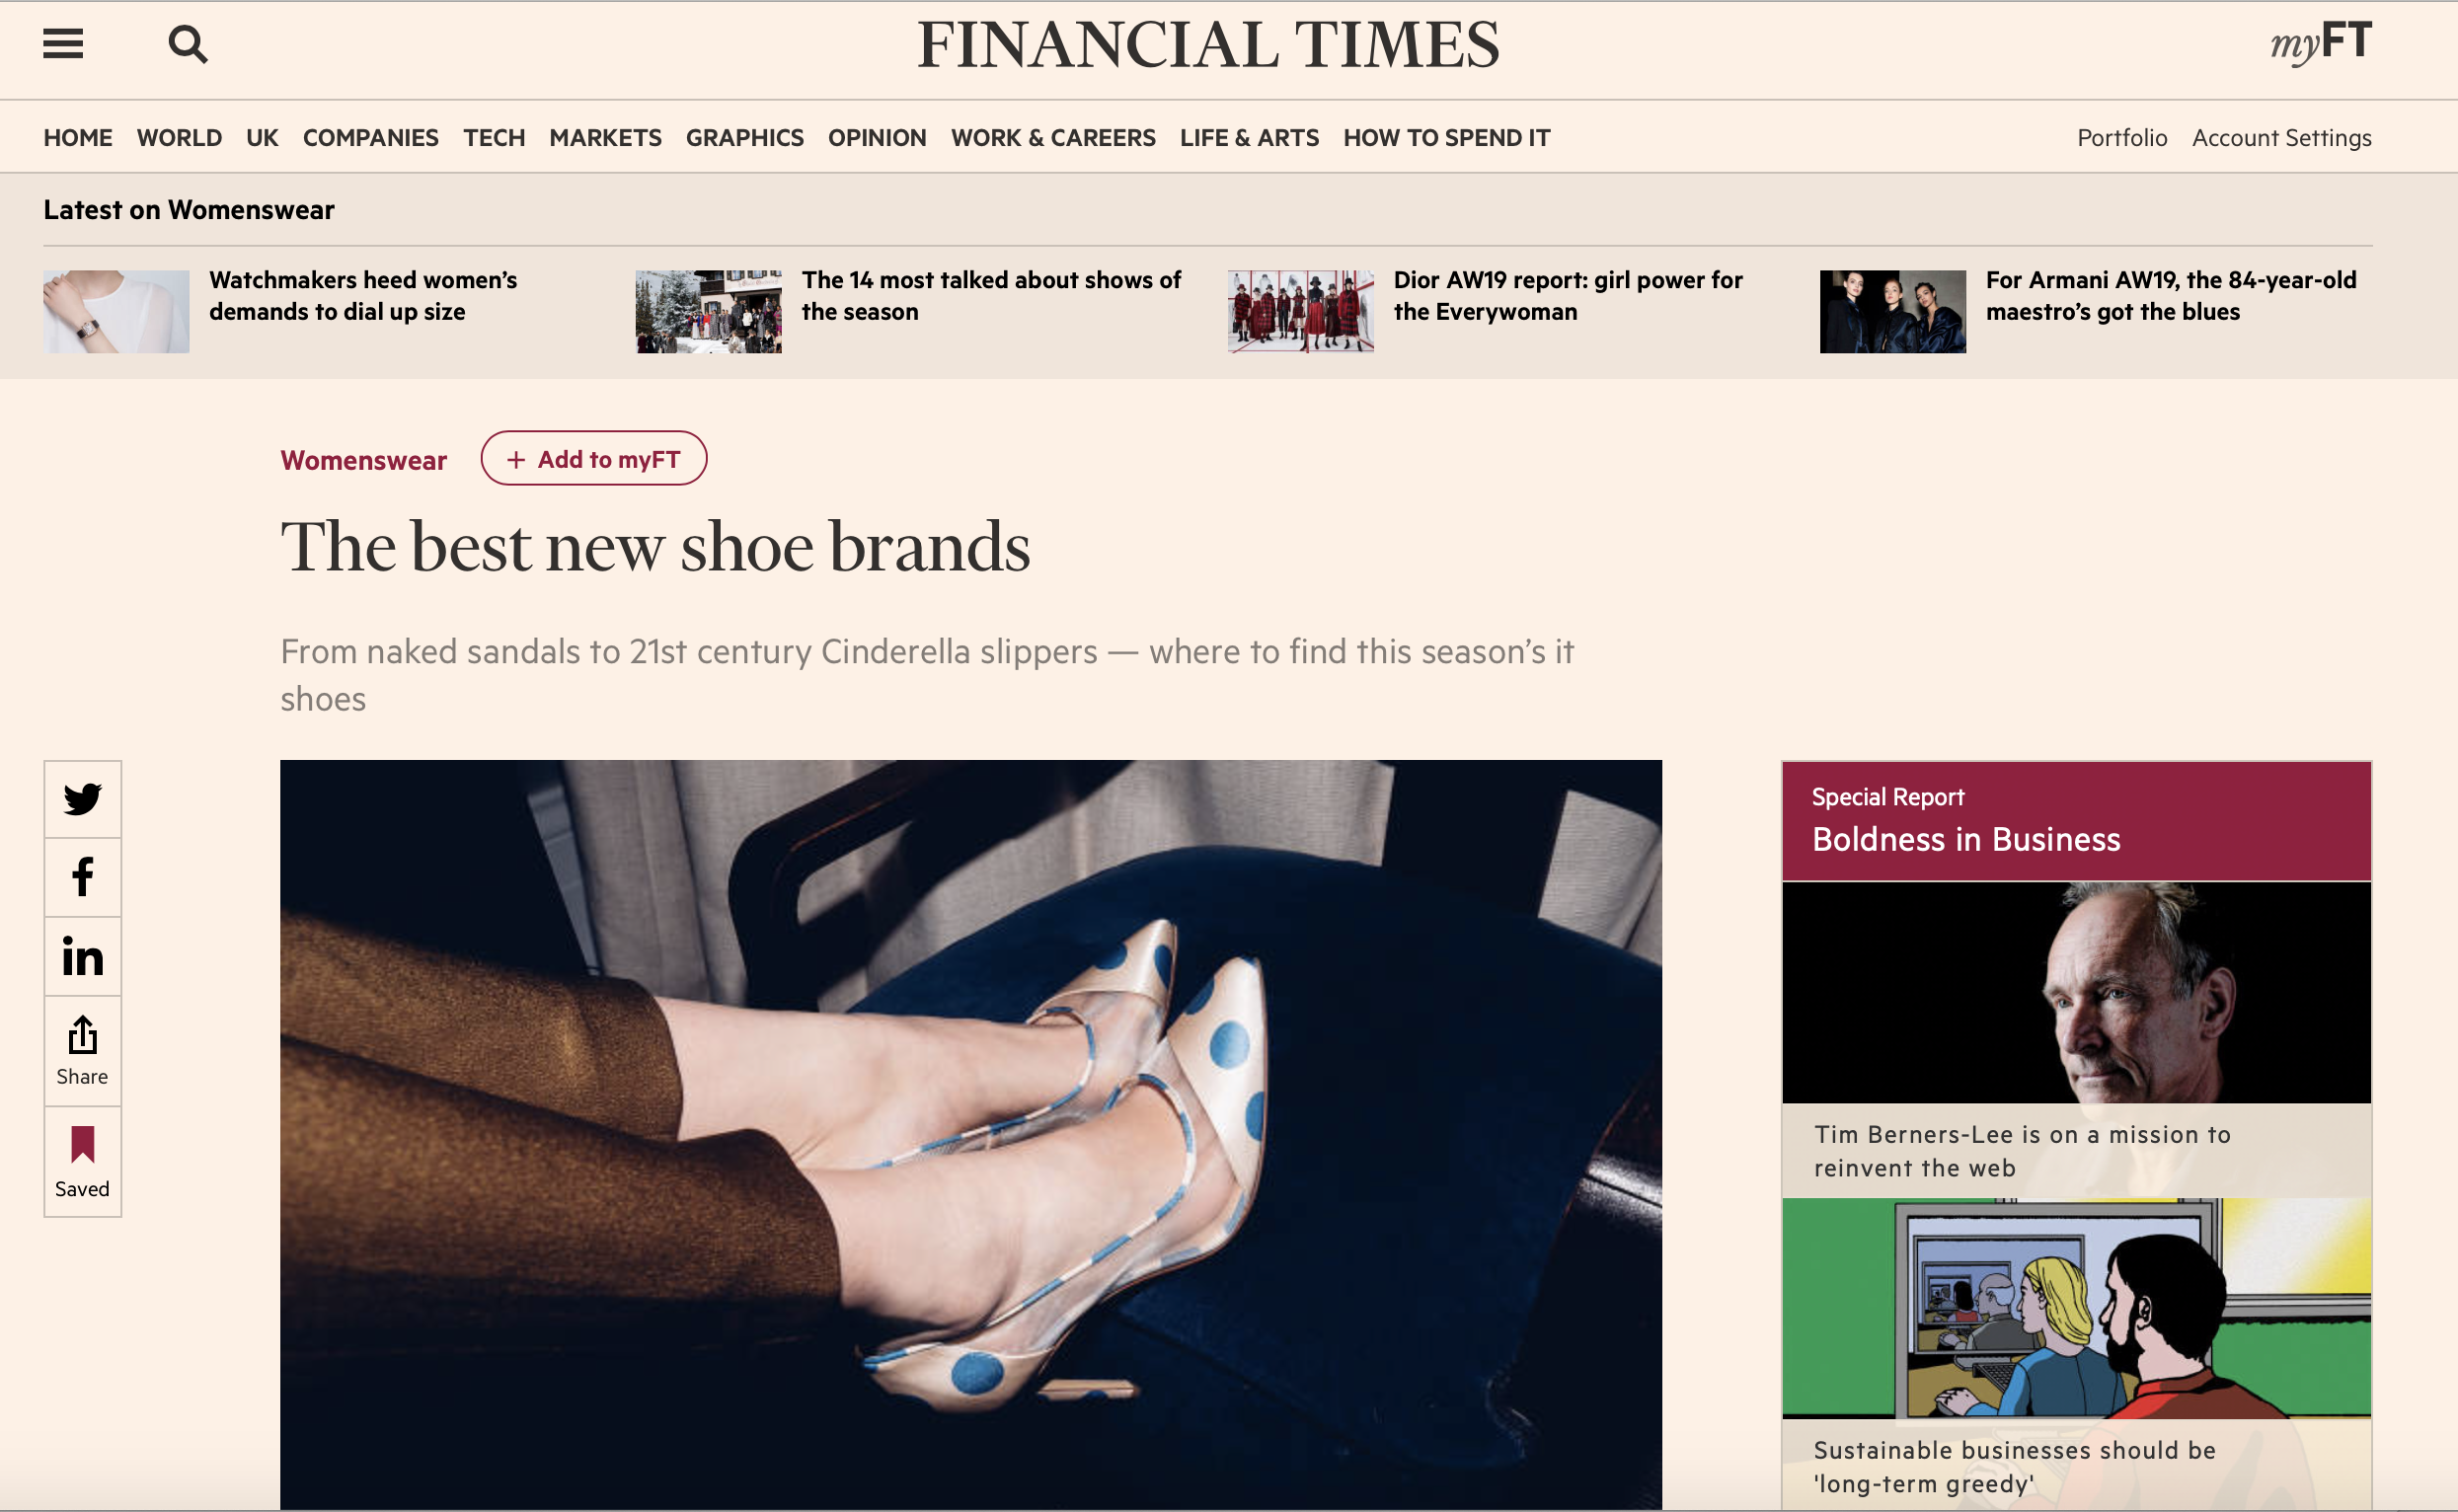 THE BEST NEW SHOE BRANDS - FEATURED IN THE FINANCIAL TIMES